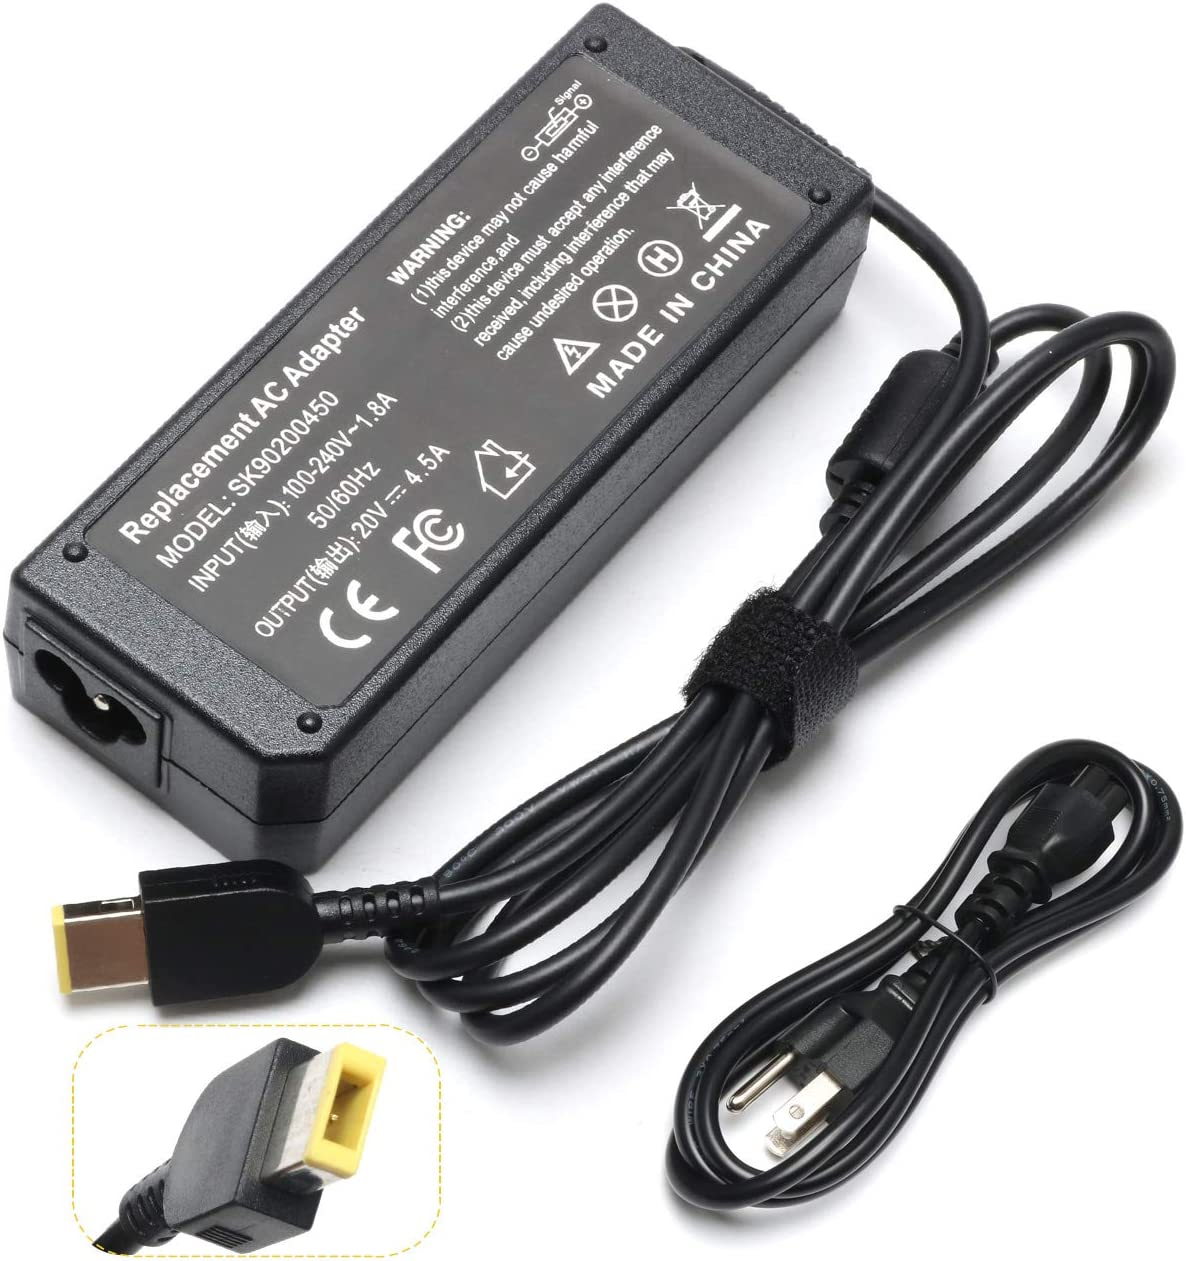 90W 20V 4.5A AC USB Adapter Laptop Charger Compatible with Lenovo Ideapad S210 S215 U330 U330P U430 U430P U530 Z410 Z510 ThinkPad X1 Carbon Touch Ultrabook 45N0237 344428U 344425 PA-1900-72